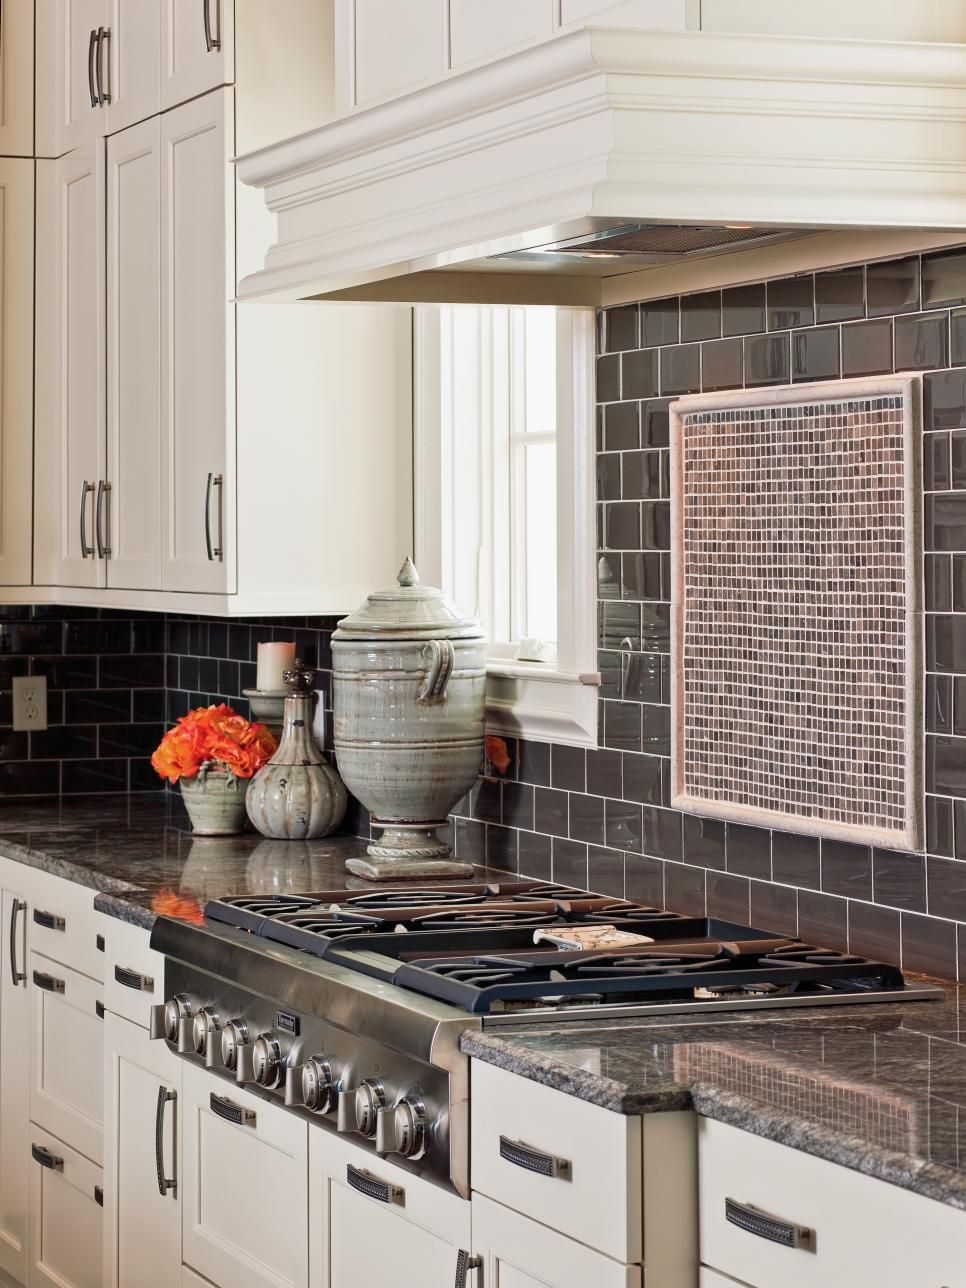 In this beautiful kitchen smoky gray subway tile comes across as